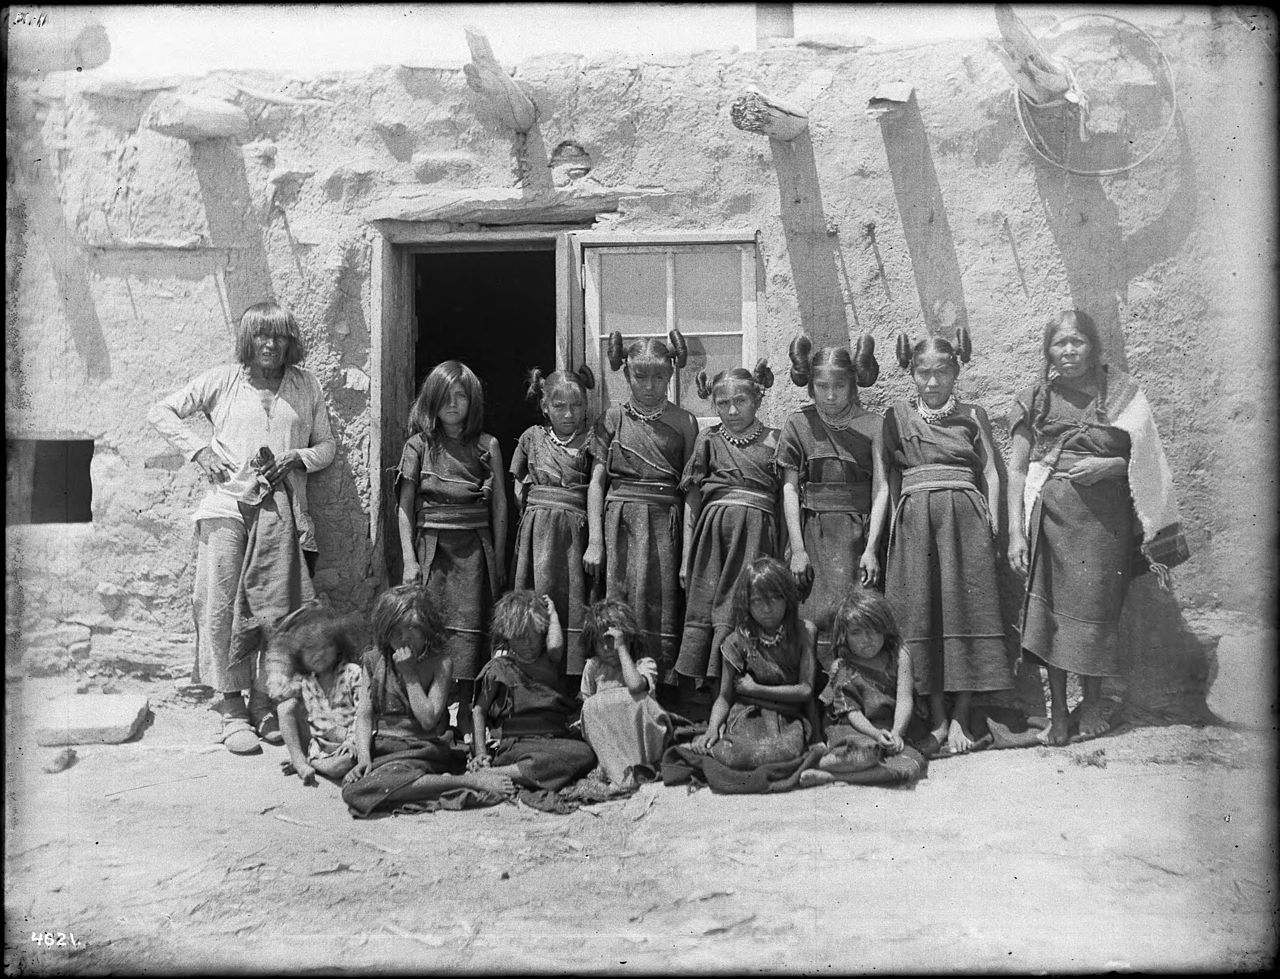 FileA Group Of Hopi Children Maidens A Married Woman